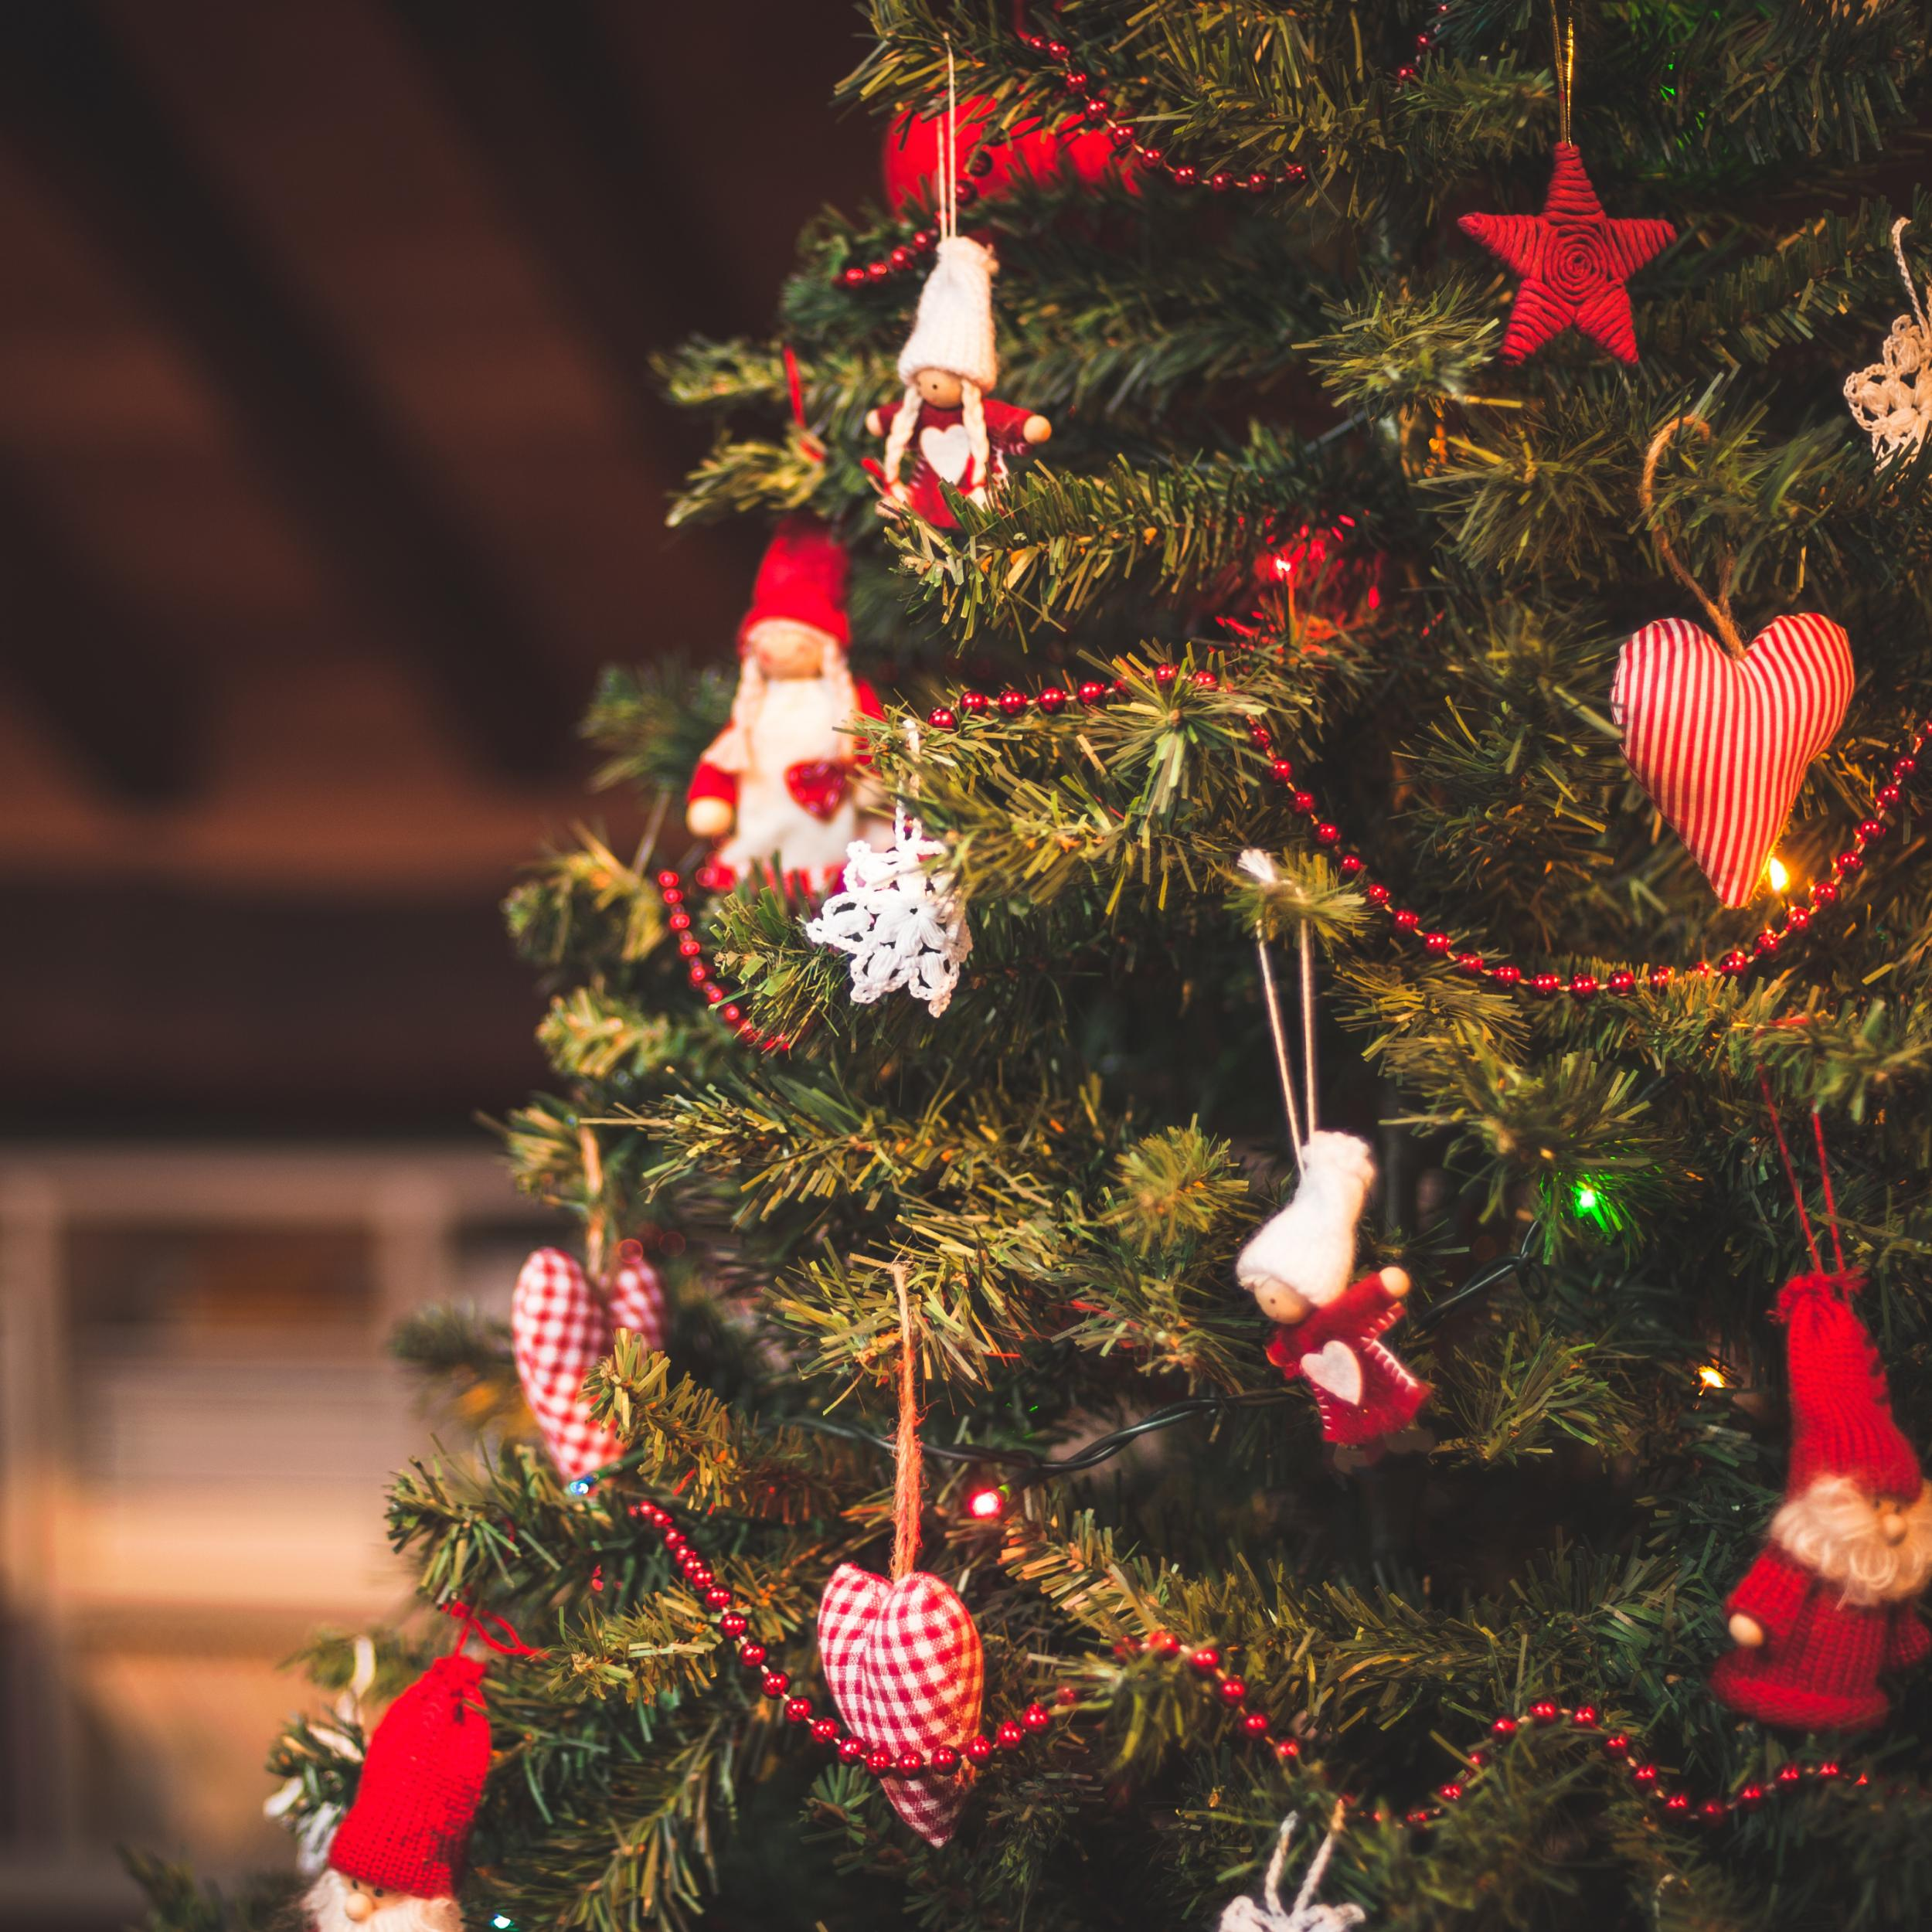 Where Does Christmas Trees Come From: Christmas Isn't Only For Christians: Secular Celebrators